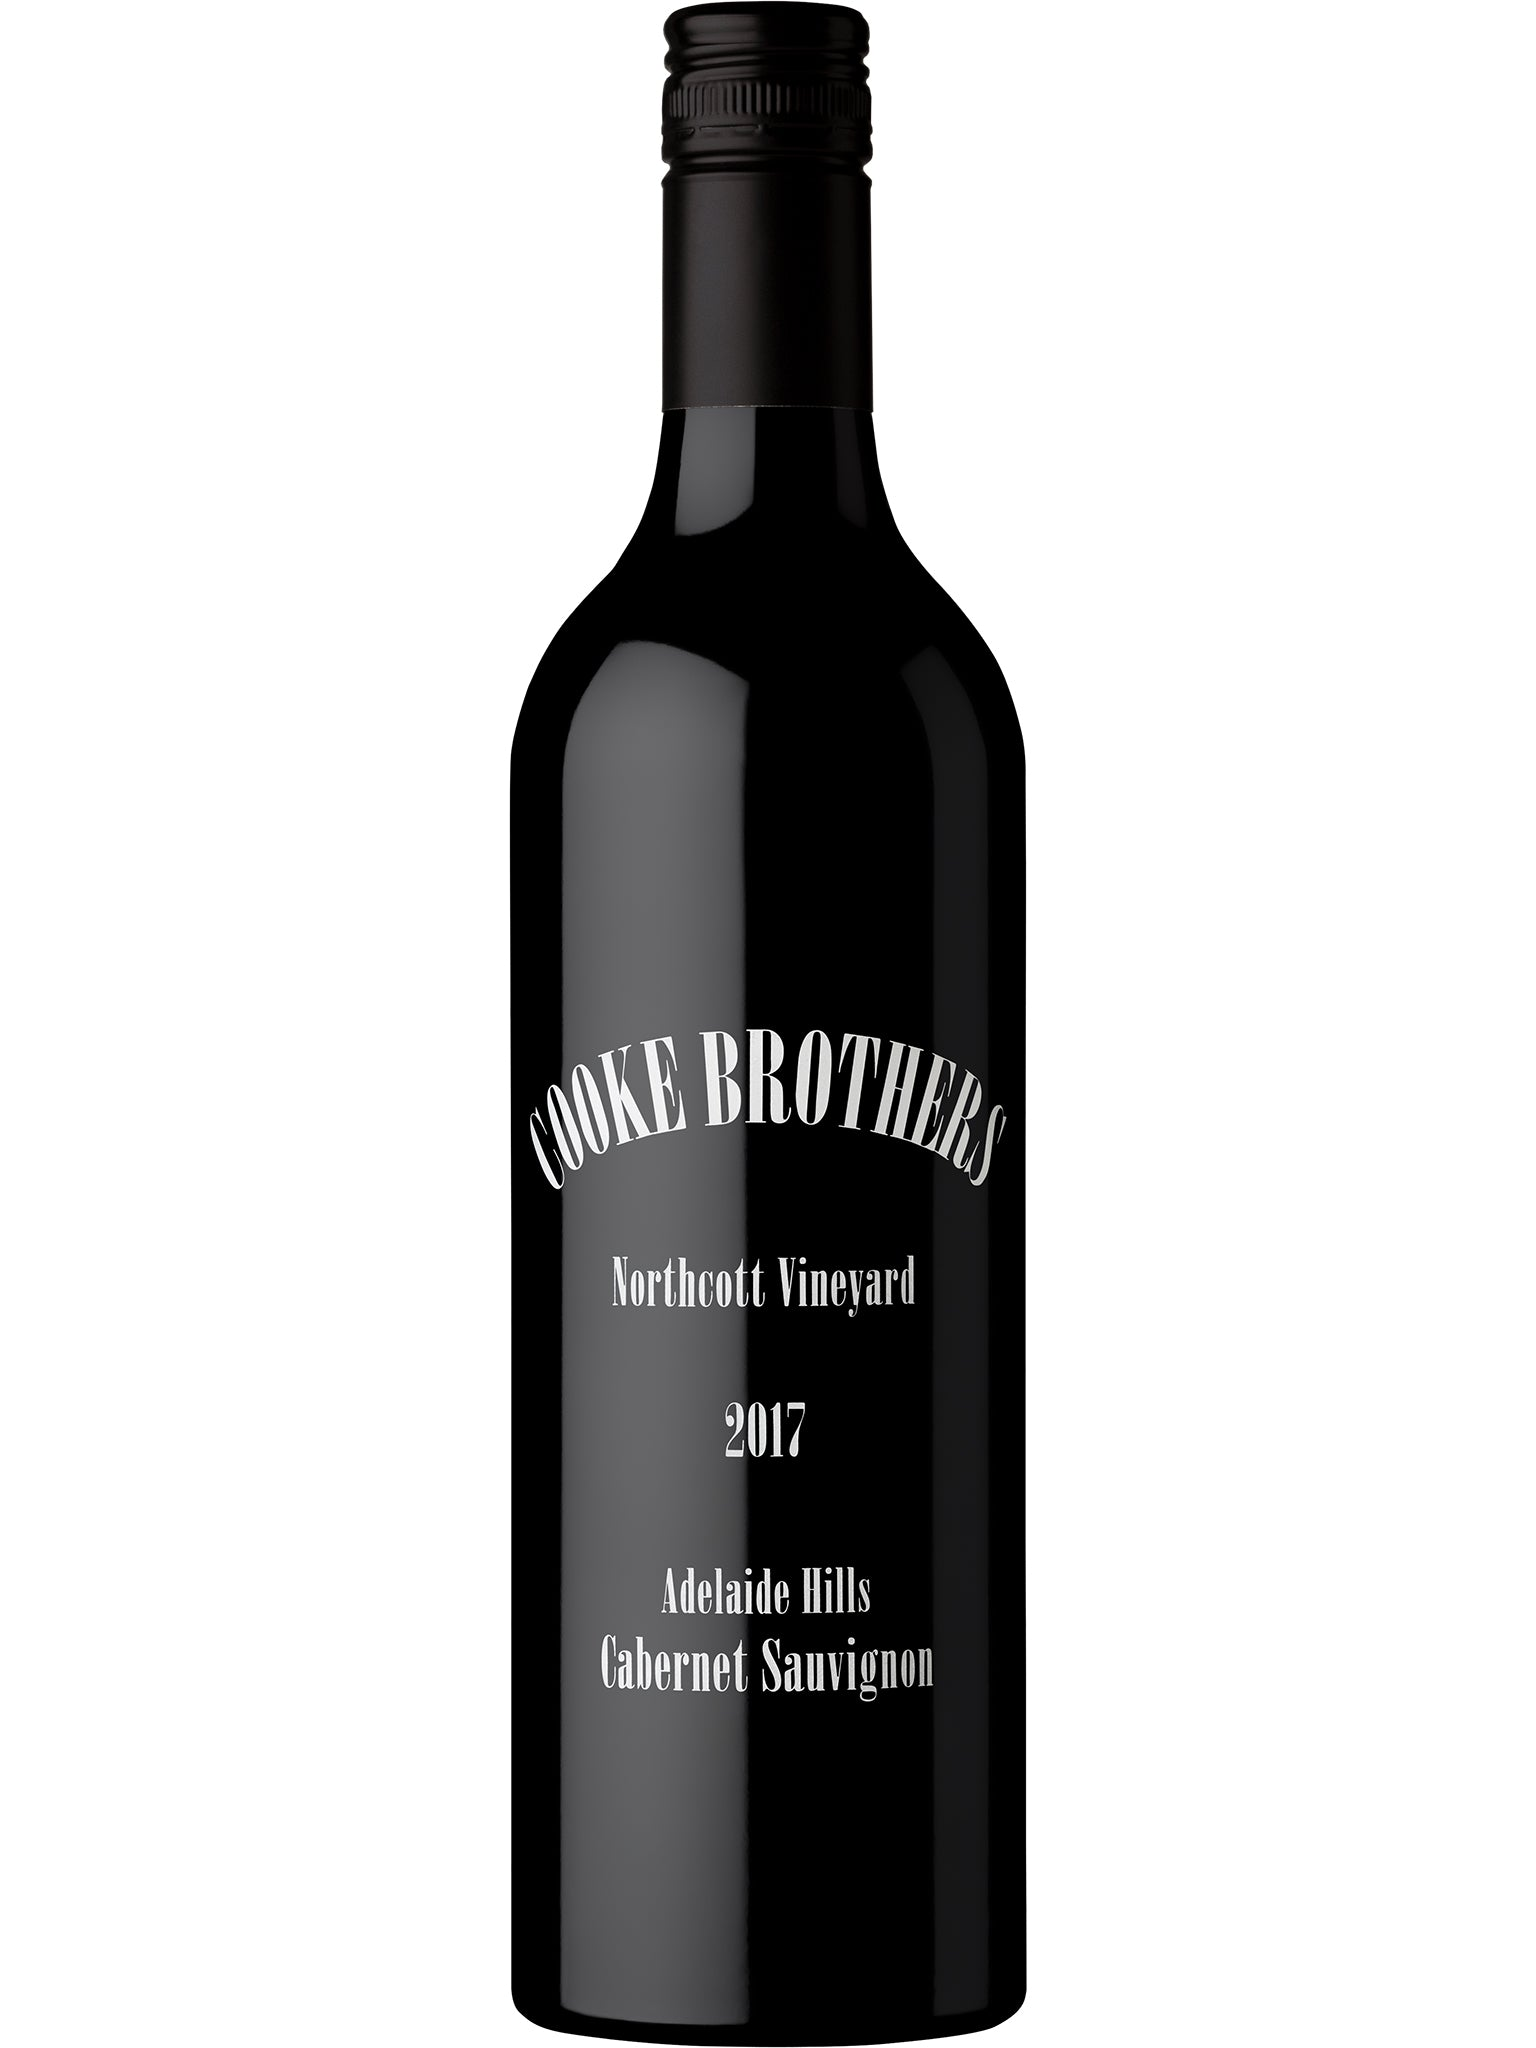 Cooke Brothers Northcote Vineyard Cabernet Sauvignon 6pk 2017